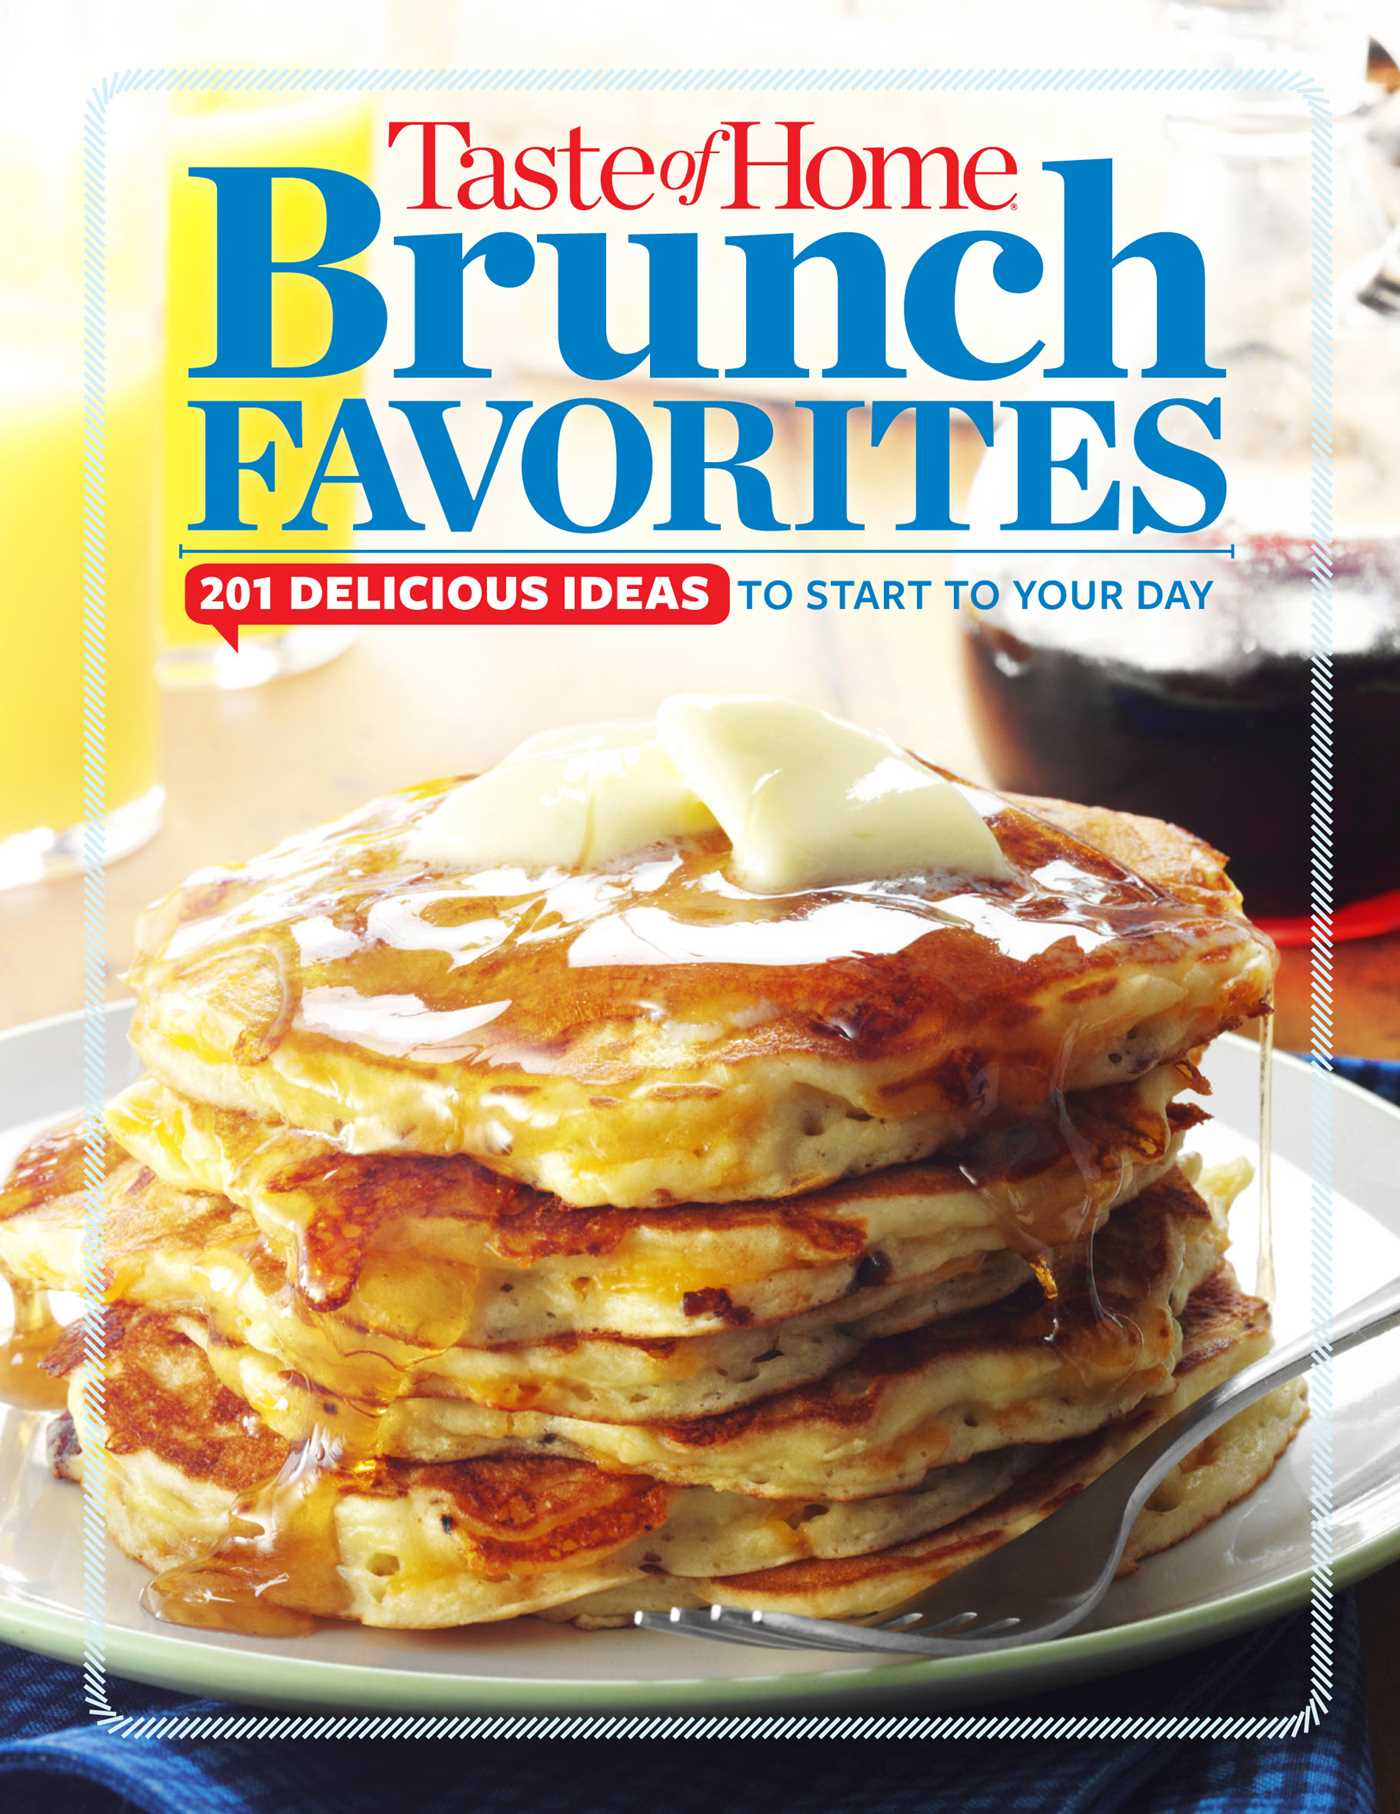 Taste of home brunch favorites 9781617653650 hr